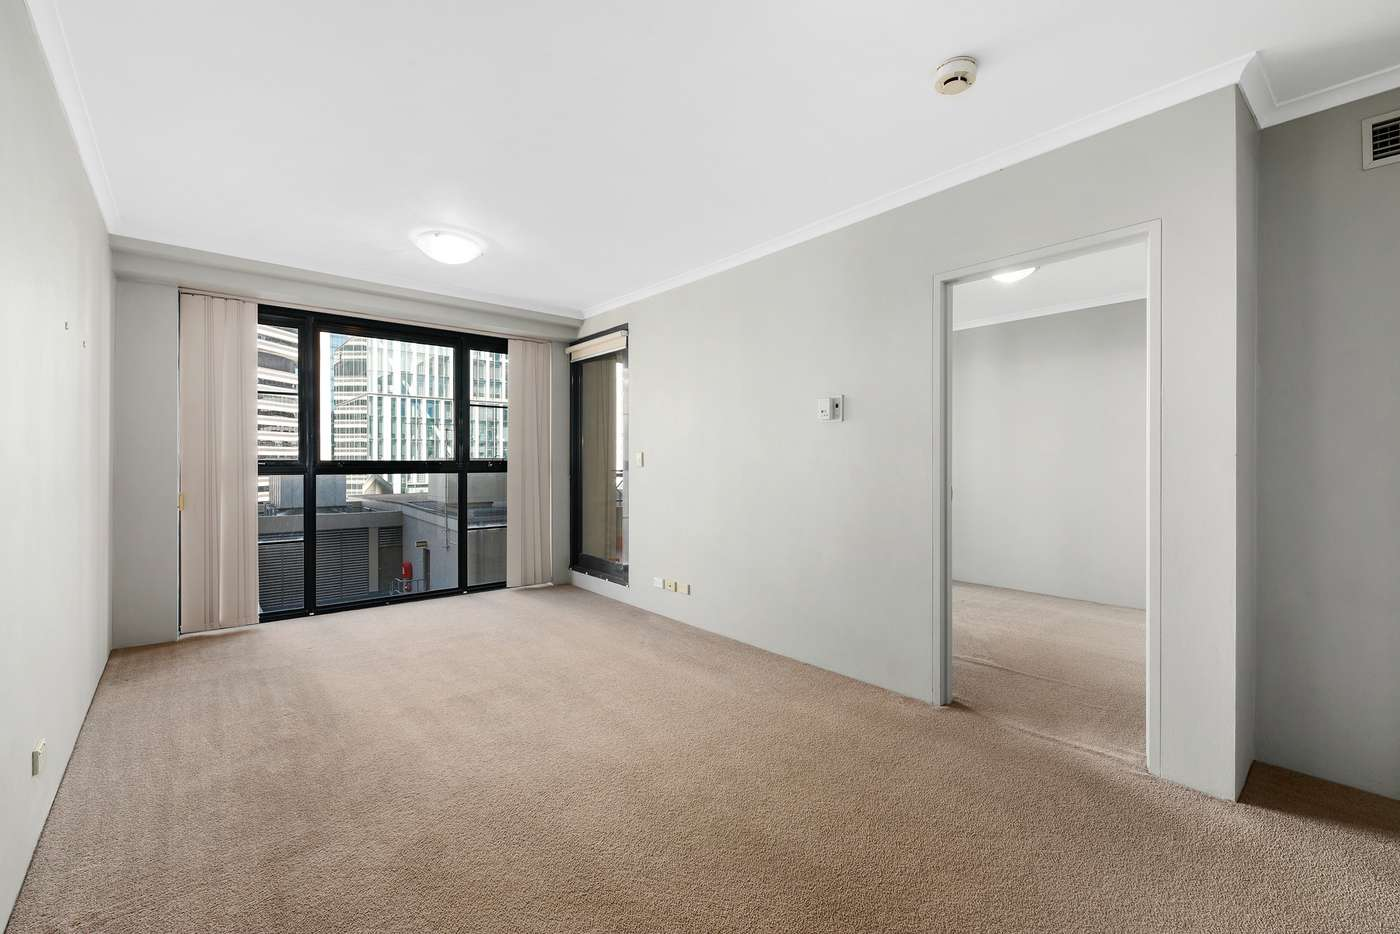 Sixth view of Homely apartment listing, 2001 1 Hosking Place, Sydney NSW 2000